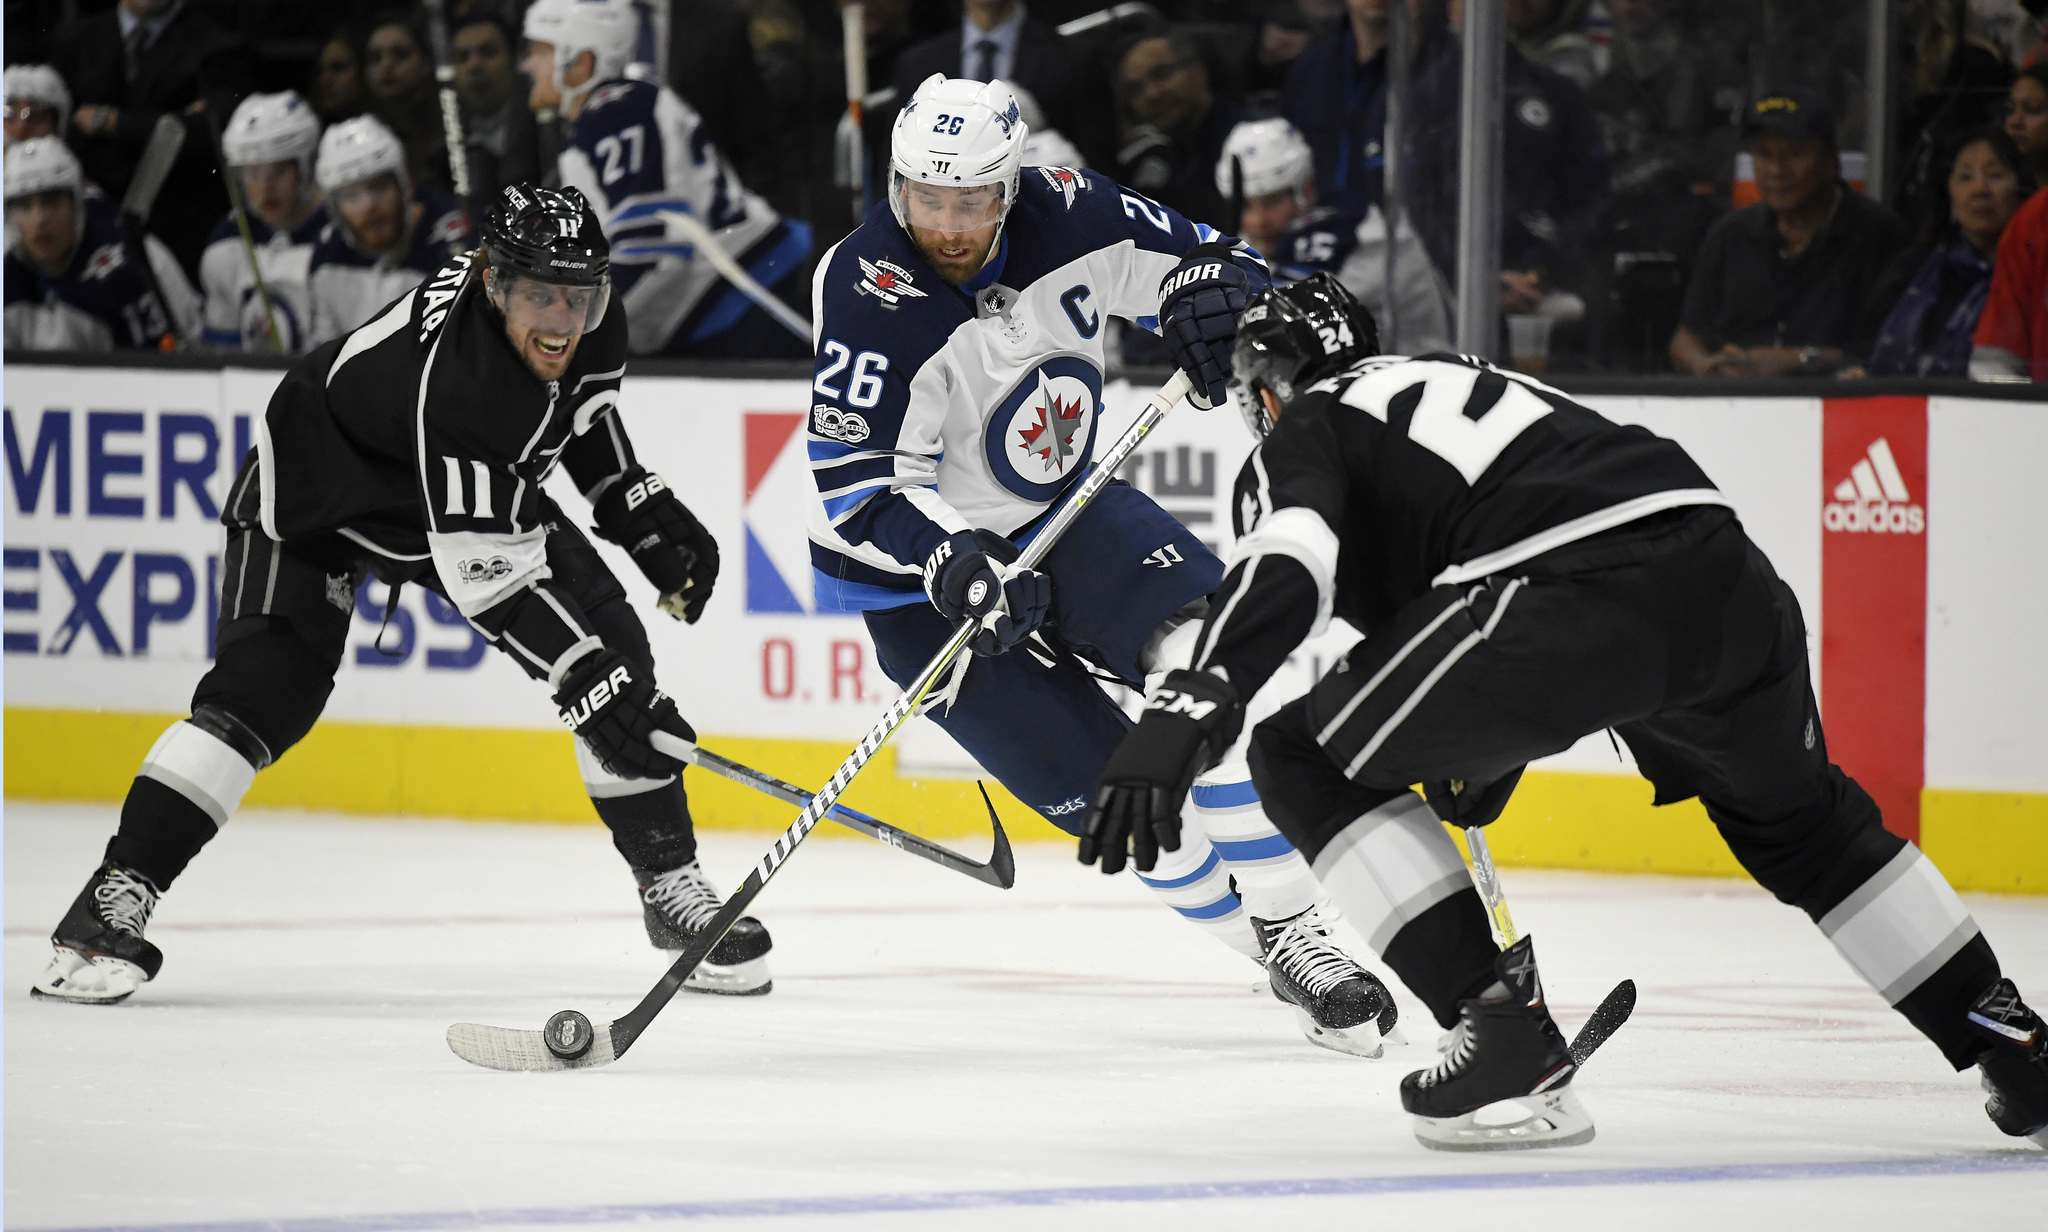 Jets clip Kings 2-1 in closely contested affair